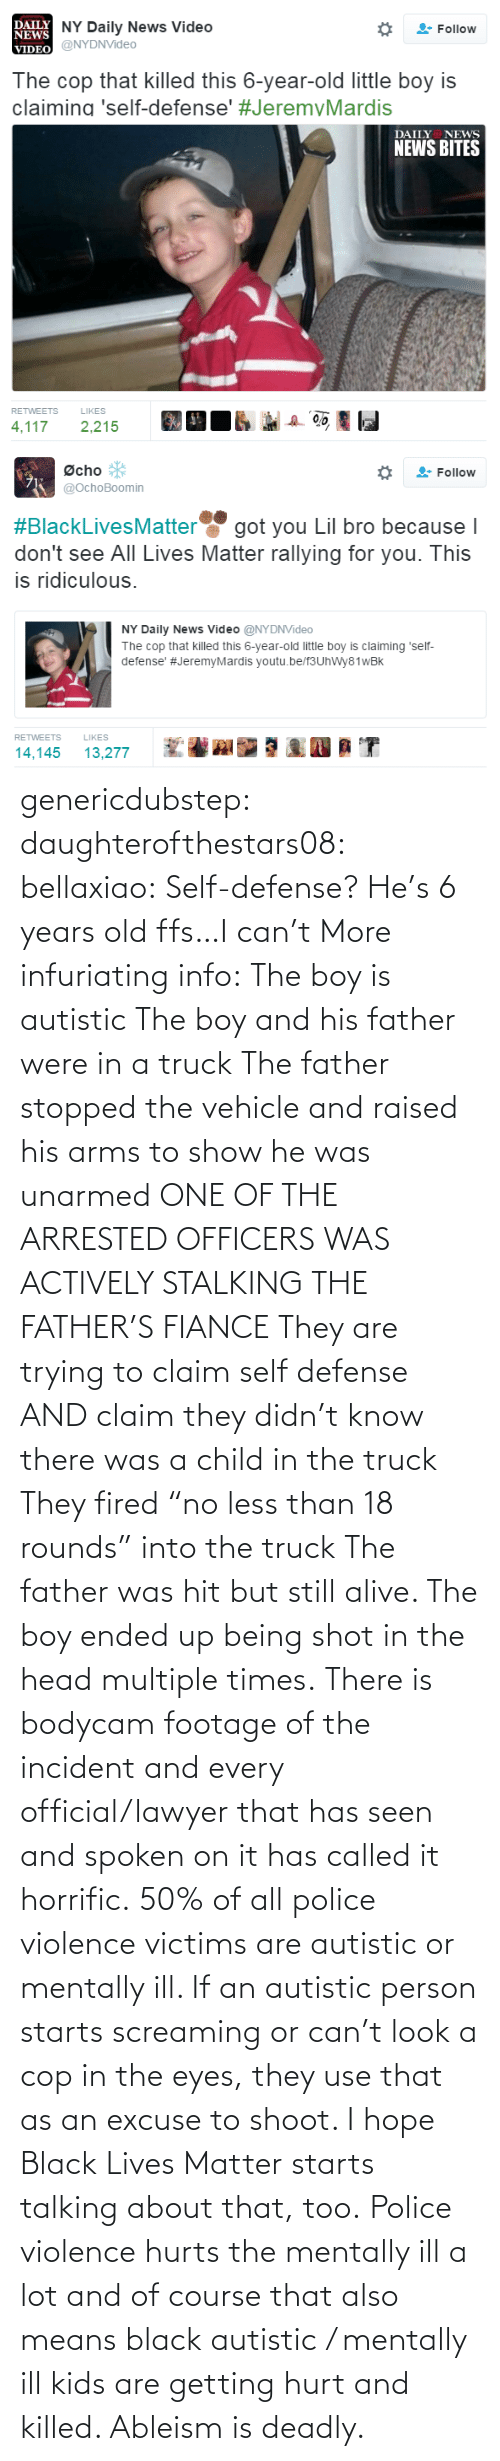 "Lawyer: genericdubstep: daughterofthestars08:  bellaxiao:  Self-defense? He's 6 years old ffs…I can't  More infuriating info: The boy is autistic The boy and his father were in a truck The father stopped the vehicle and raised his arms to show he was unarmed ONE OF THE ARRESTED OFFICERS WAS ACTIVELY STALKING THE FATHER'S FIANCE They are trying to claim self defense AND claim they didn't know there was a child in the truck They fired ""no less than 18 rounds"" into the truck The father was hit but still alive. The boy ended up being shot in the head multiple times. There is bodycam footage of the incident and every official/lawyer that has seen and spoken on it has called it horrific.  50% of all police violence victims are autistic or mentally ill. If an autistic person starts screaming or can't look a cop in the eyes, they use that as an excuse to shoot. I hope Black Lives Matter starts talking about that, too. Police violence hurts the mentally ill a lot and of course that also means black autistic / mentally ill kids are getting hurt and killed. Ableism is deadly."